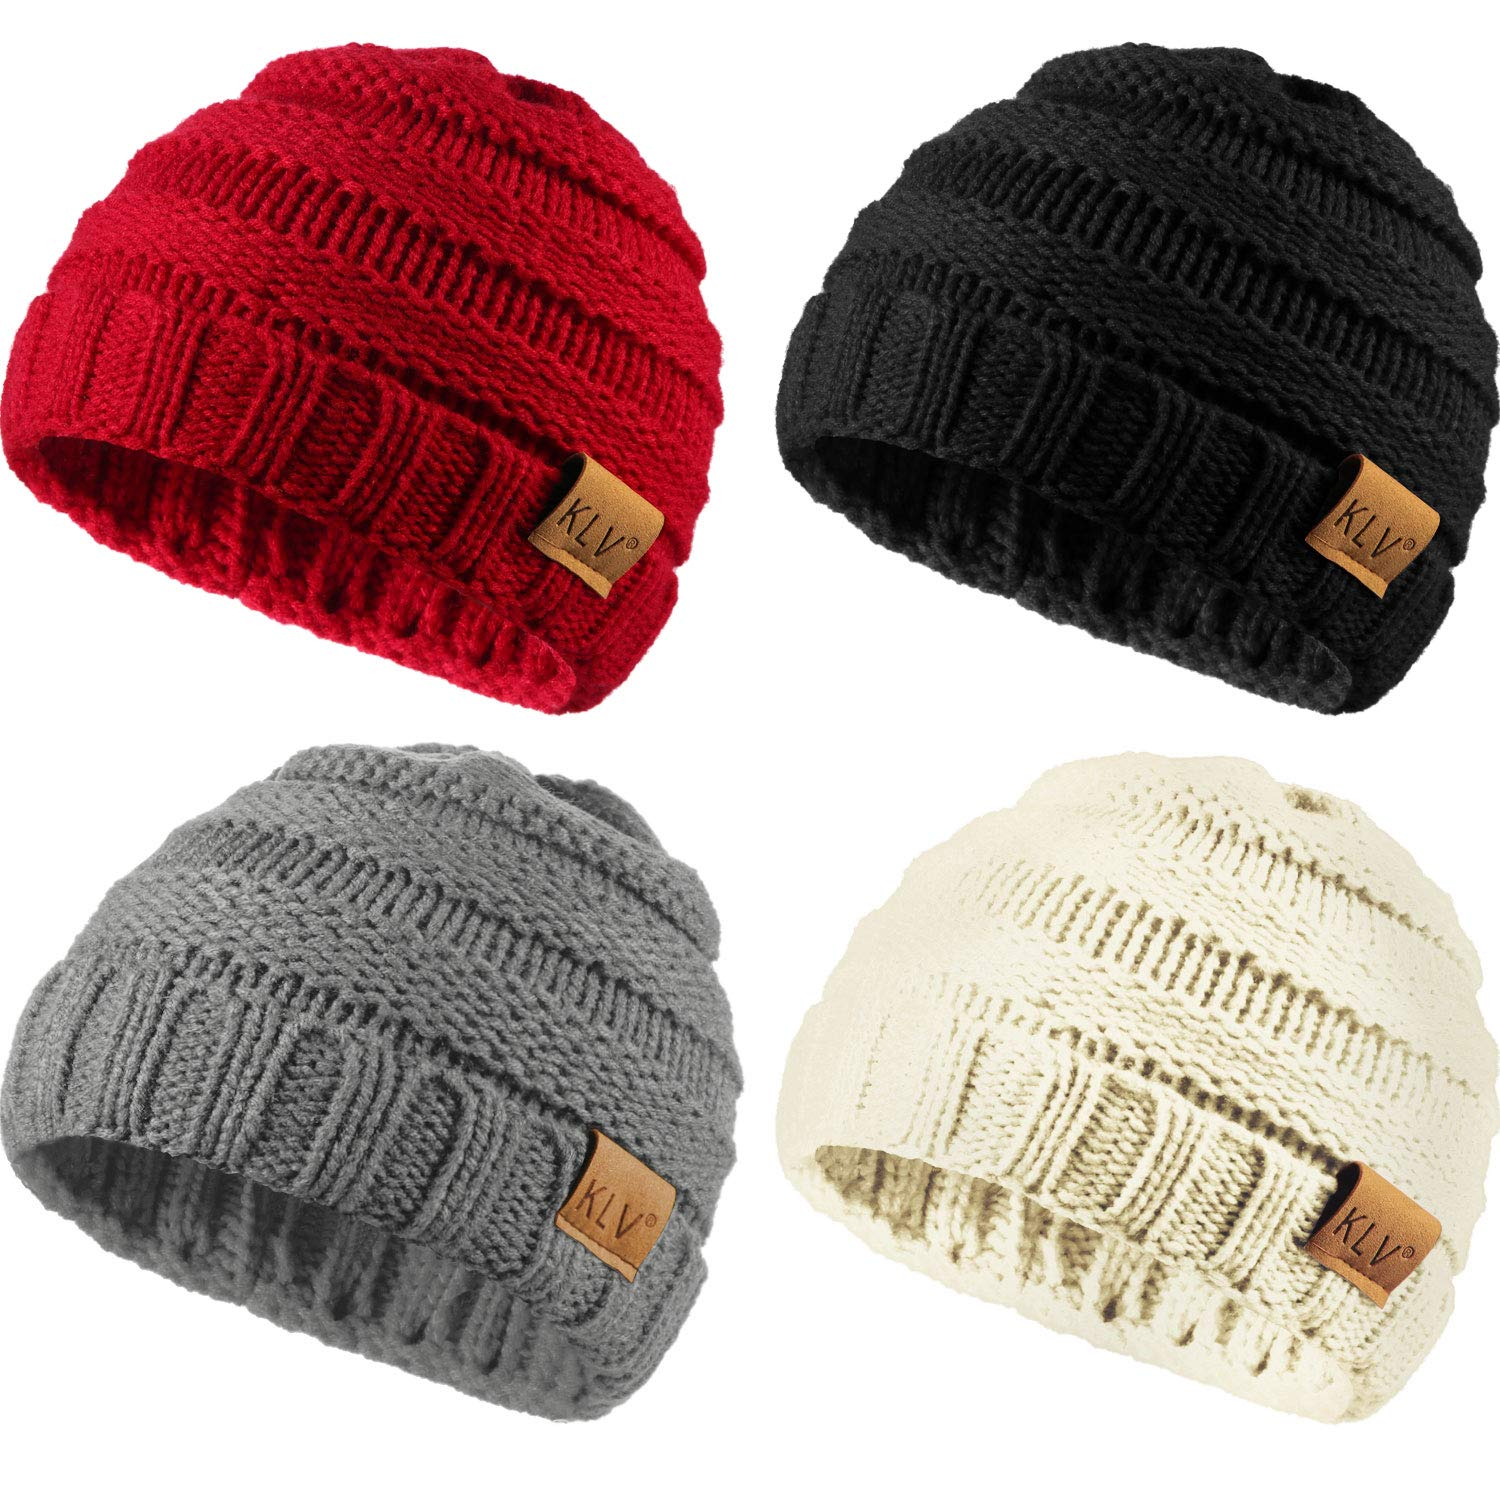 Amazon.com  Zhanmai 4 Packs Knitted Baby Hats Caps Cute Cozy Chunky Winter  Infant Toddler Baby Beanies Boys Girls (Multicolor B)  Clothing 8dc5aa5639a